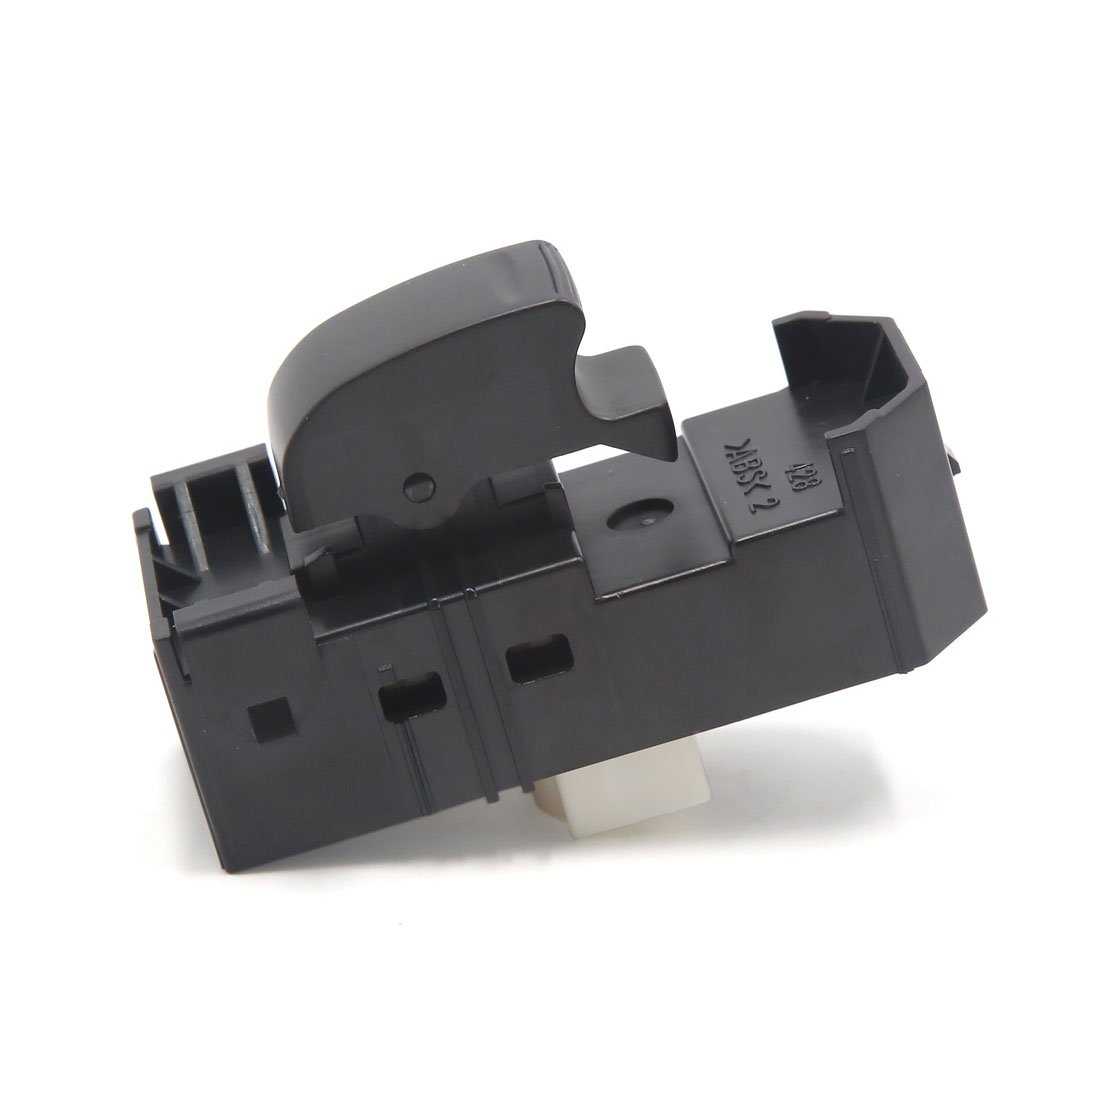 uxcell 84810-60050 Car Electric Power Window Master Switch for Landcruiser 100 105 Series